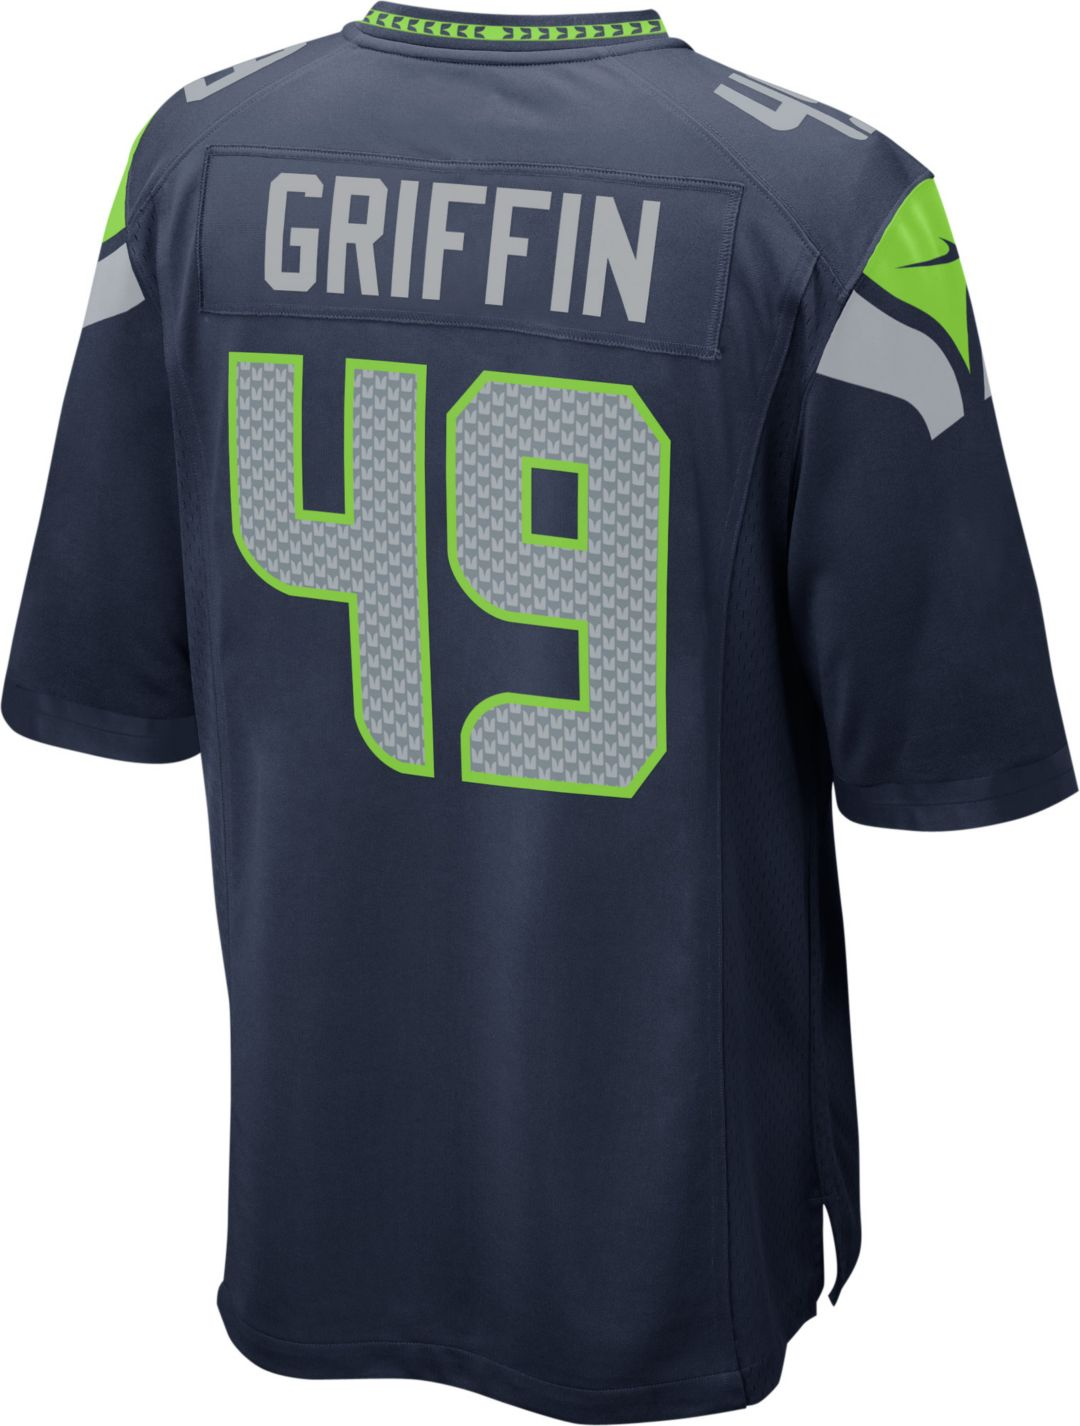 New Shaquem Griffin #49 Nike Men's Seattle Seahawks Home Game Jersey  hot sale